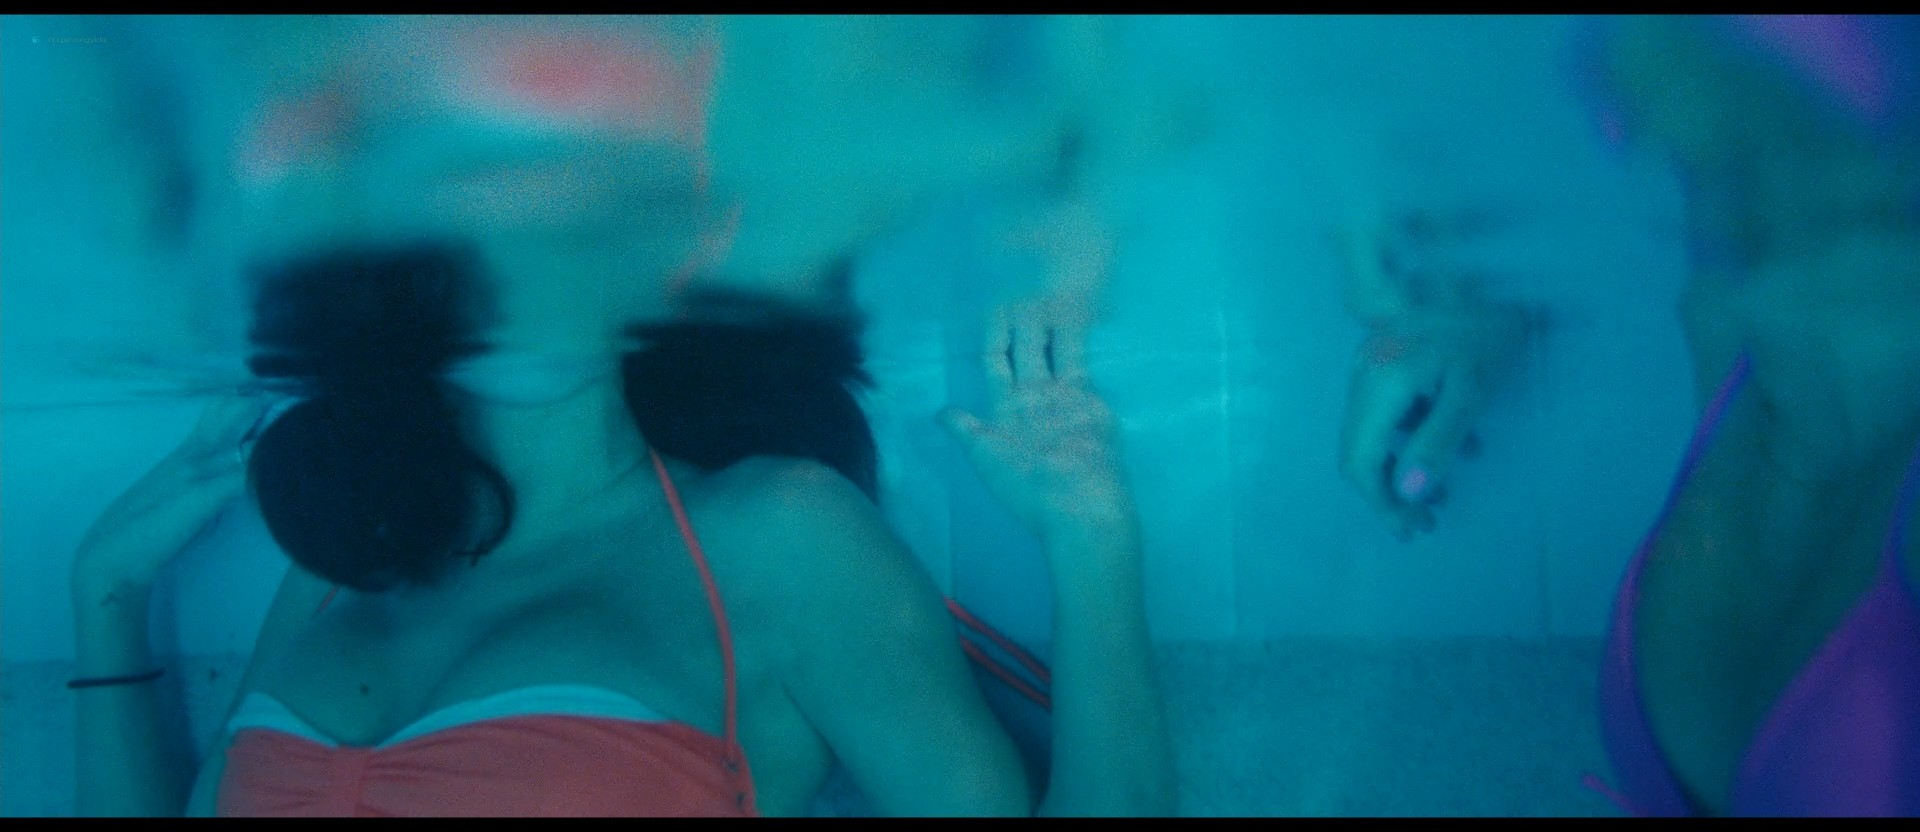 Ashley Benson nude skinny dipping others nude too - Spring Breakers (2012) HD 1080p BluRay (28)